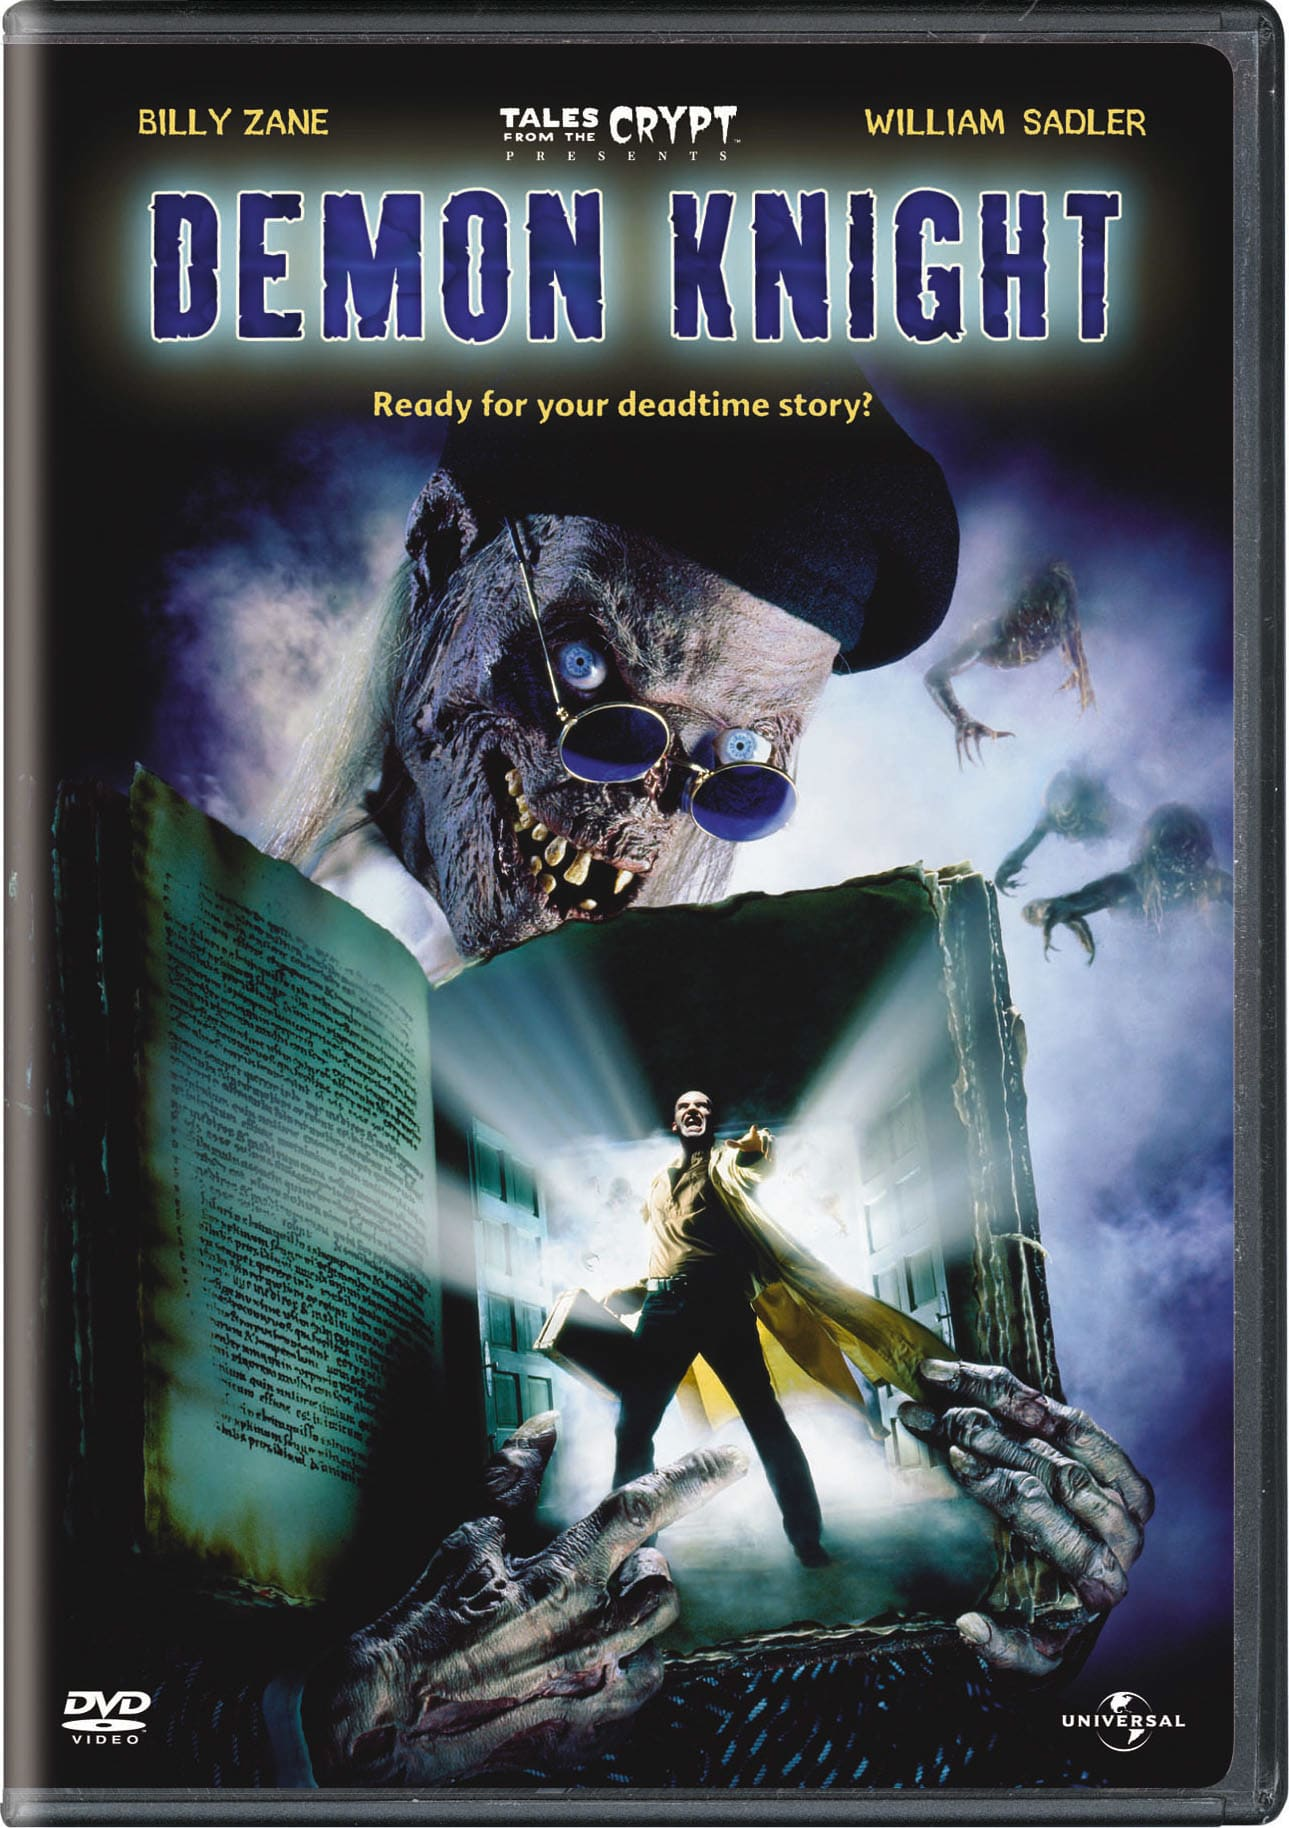 Tales from the Crypt: Demon Knight [DVD]